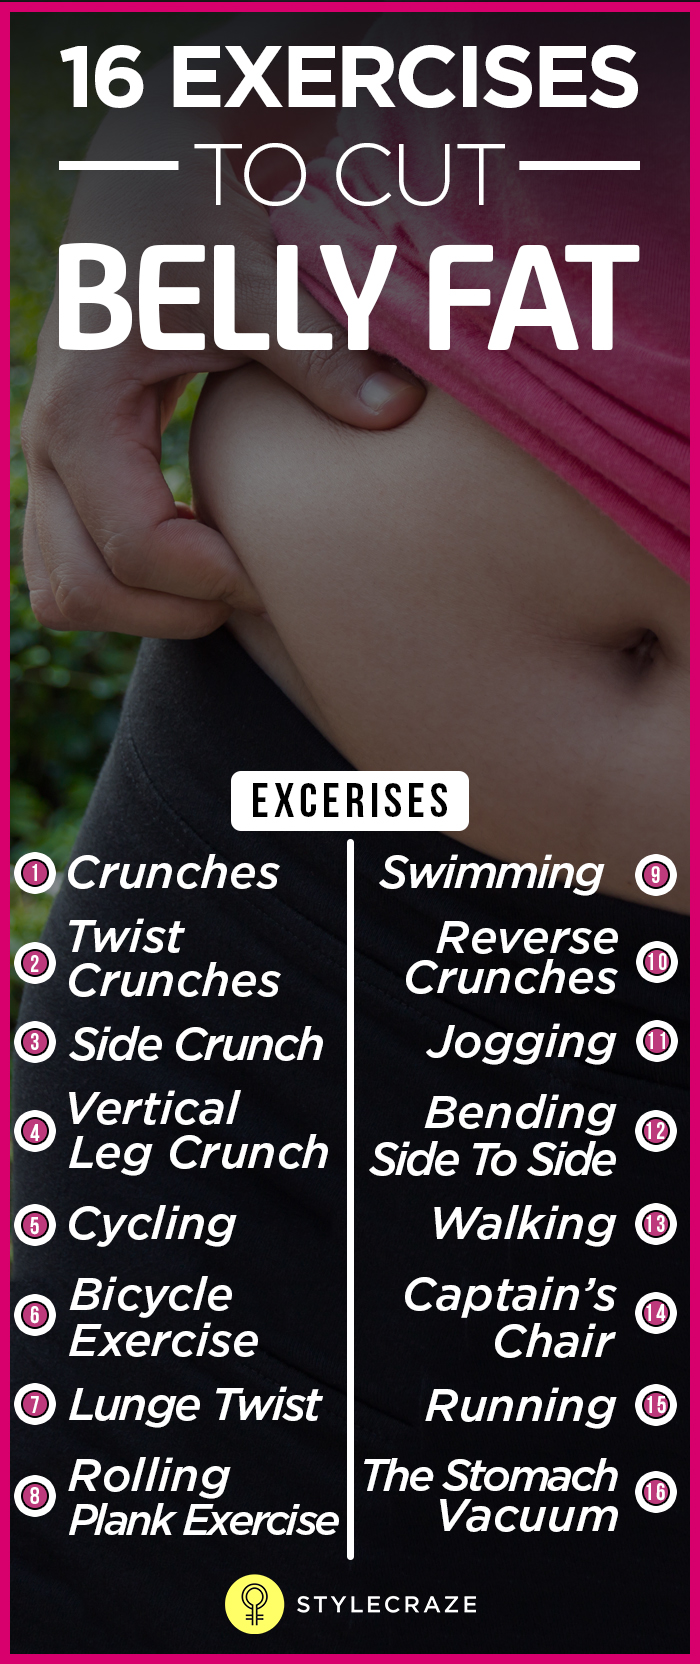 16 Exercises to cut Belly Fat 001